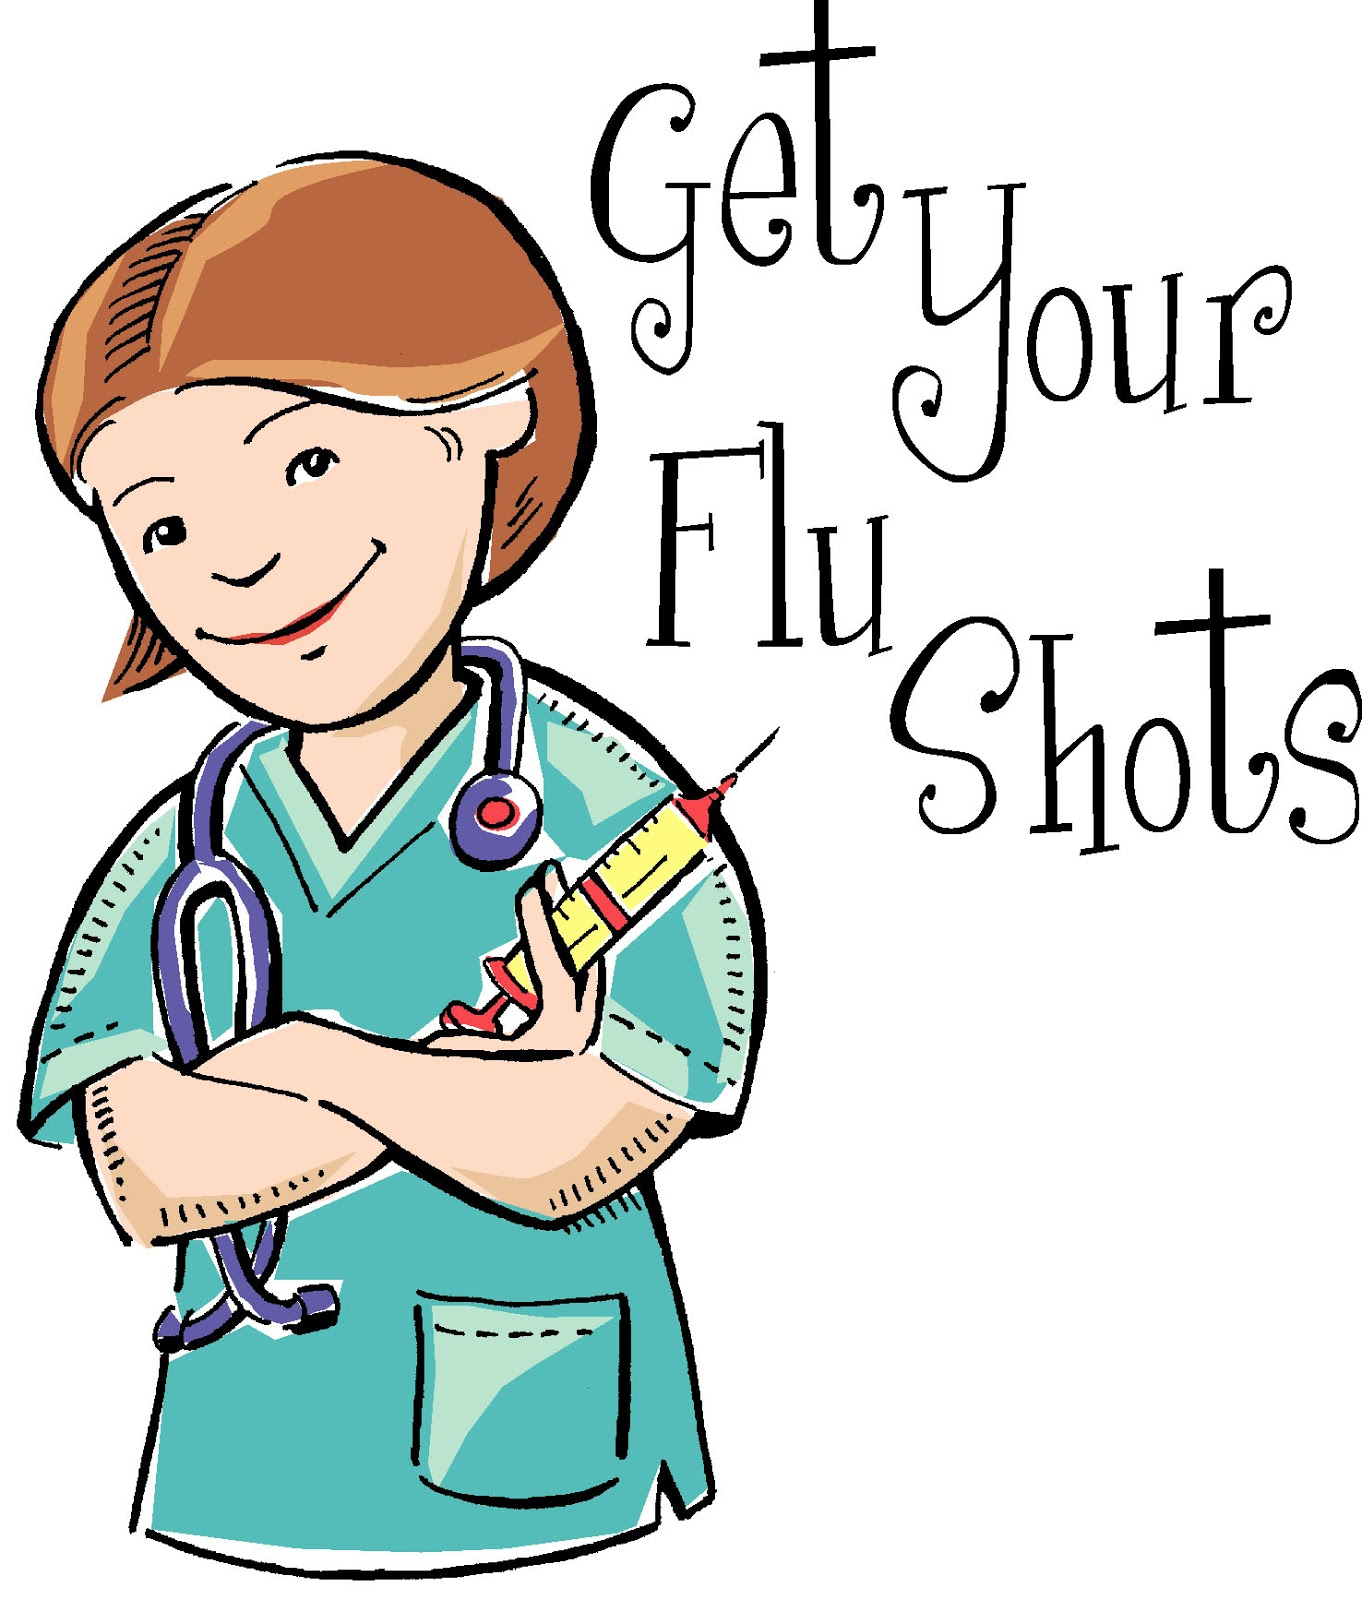 Influenza Prevention with Food and Supplementation Instead of Flu-Shot: Studies Suggest